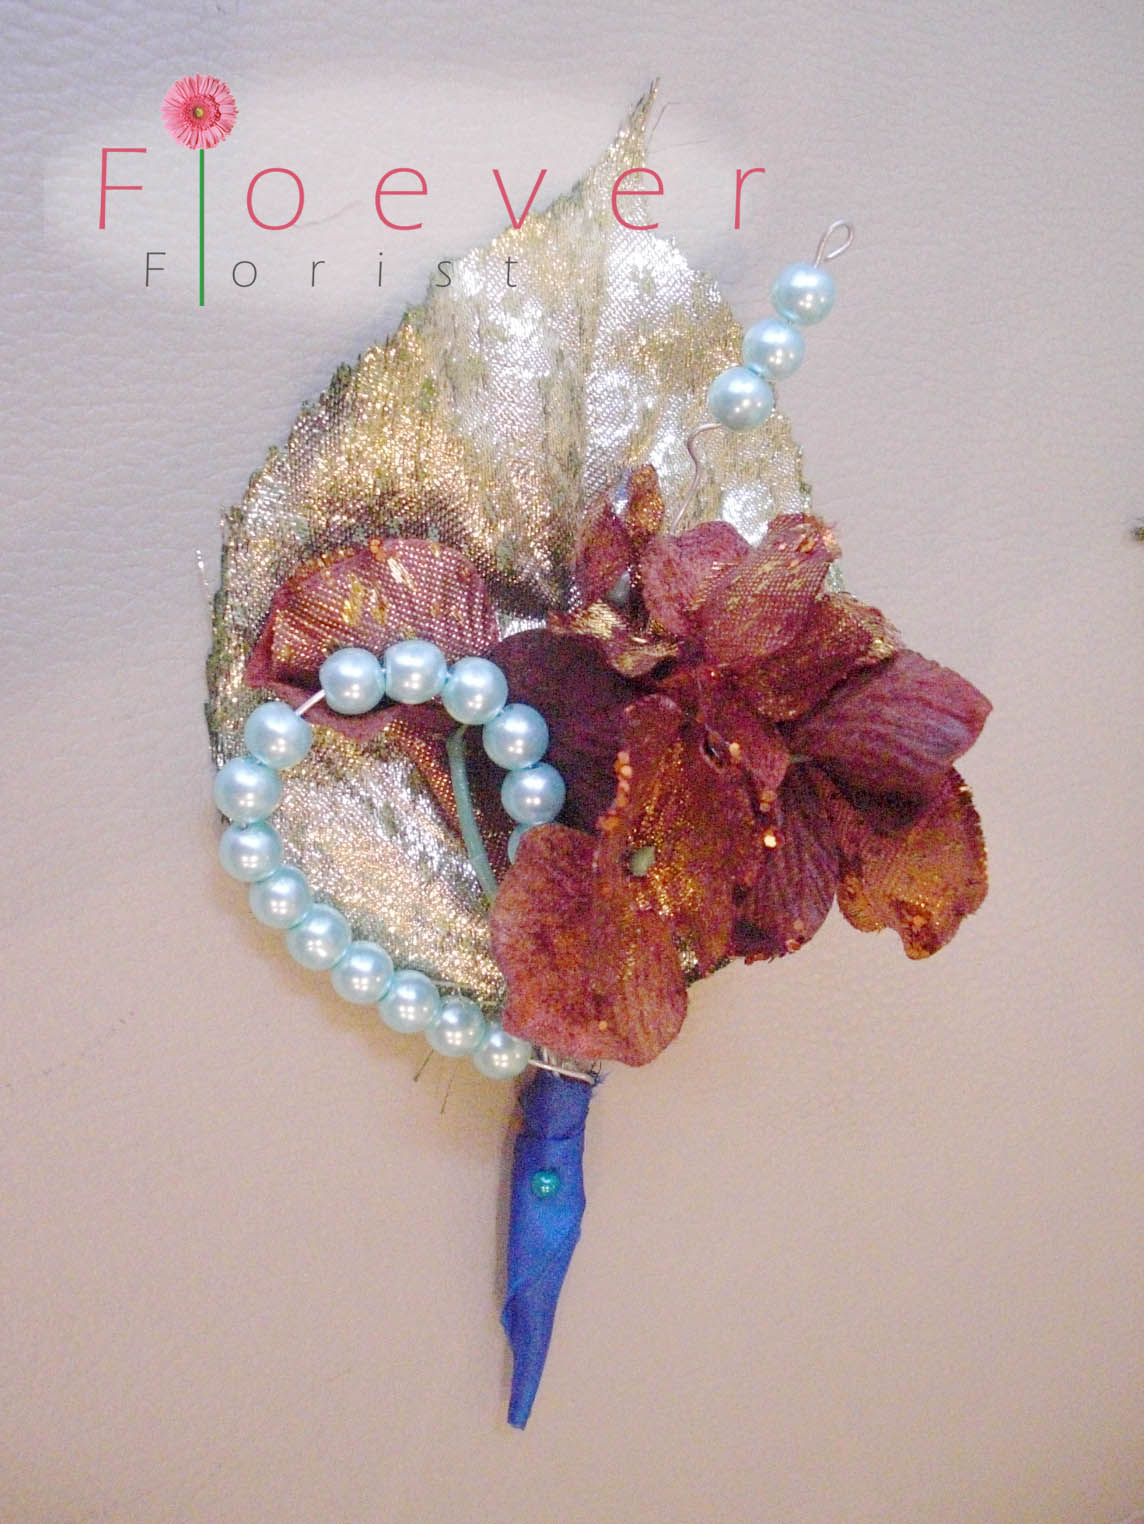 Floever Florist Gold and Blue Jewel Bouqet